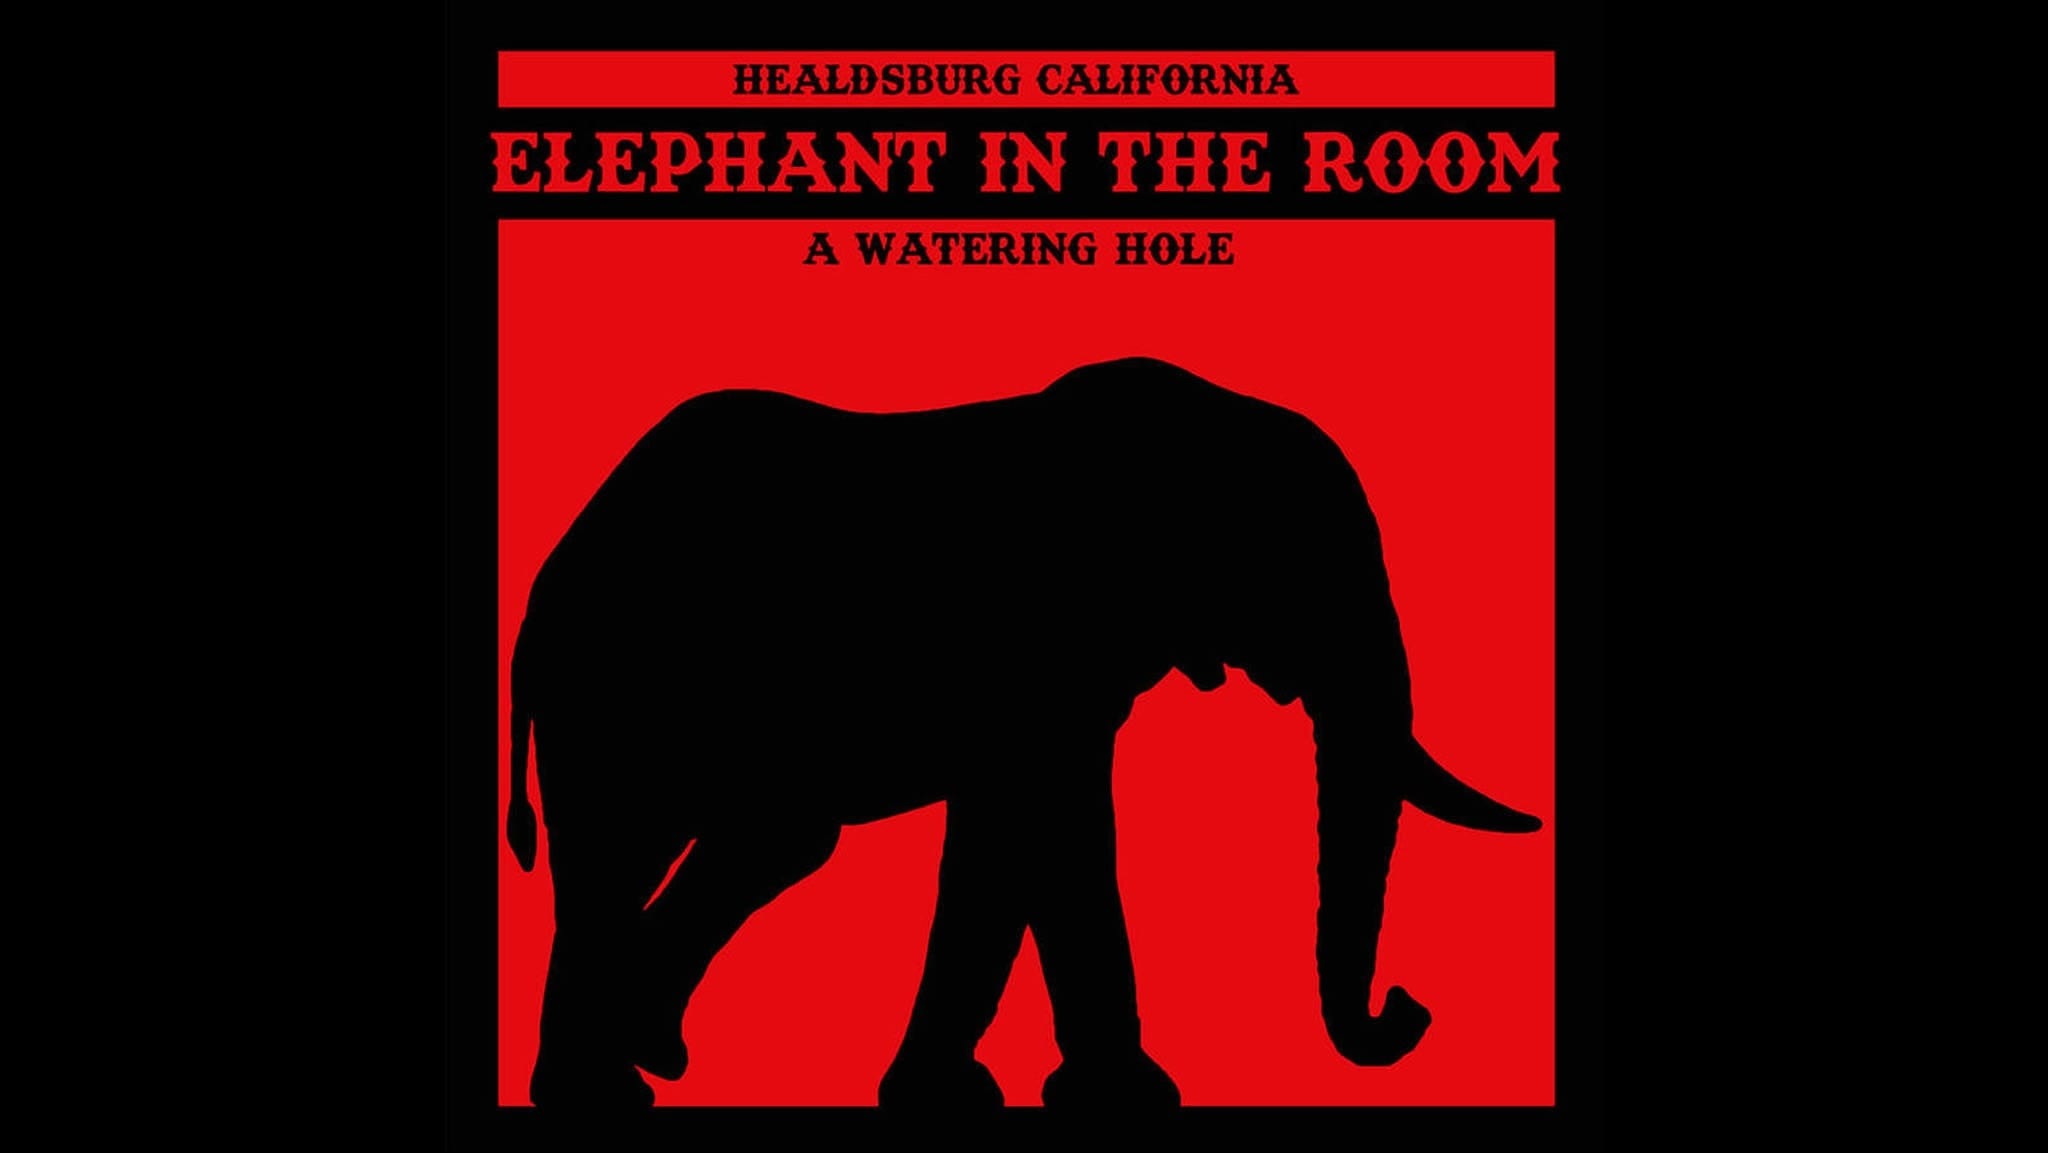 Elephant In The Room - Healdsburg's Favorite Watering Hole